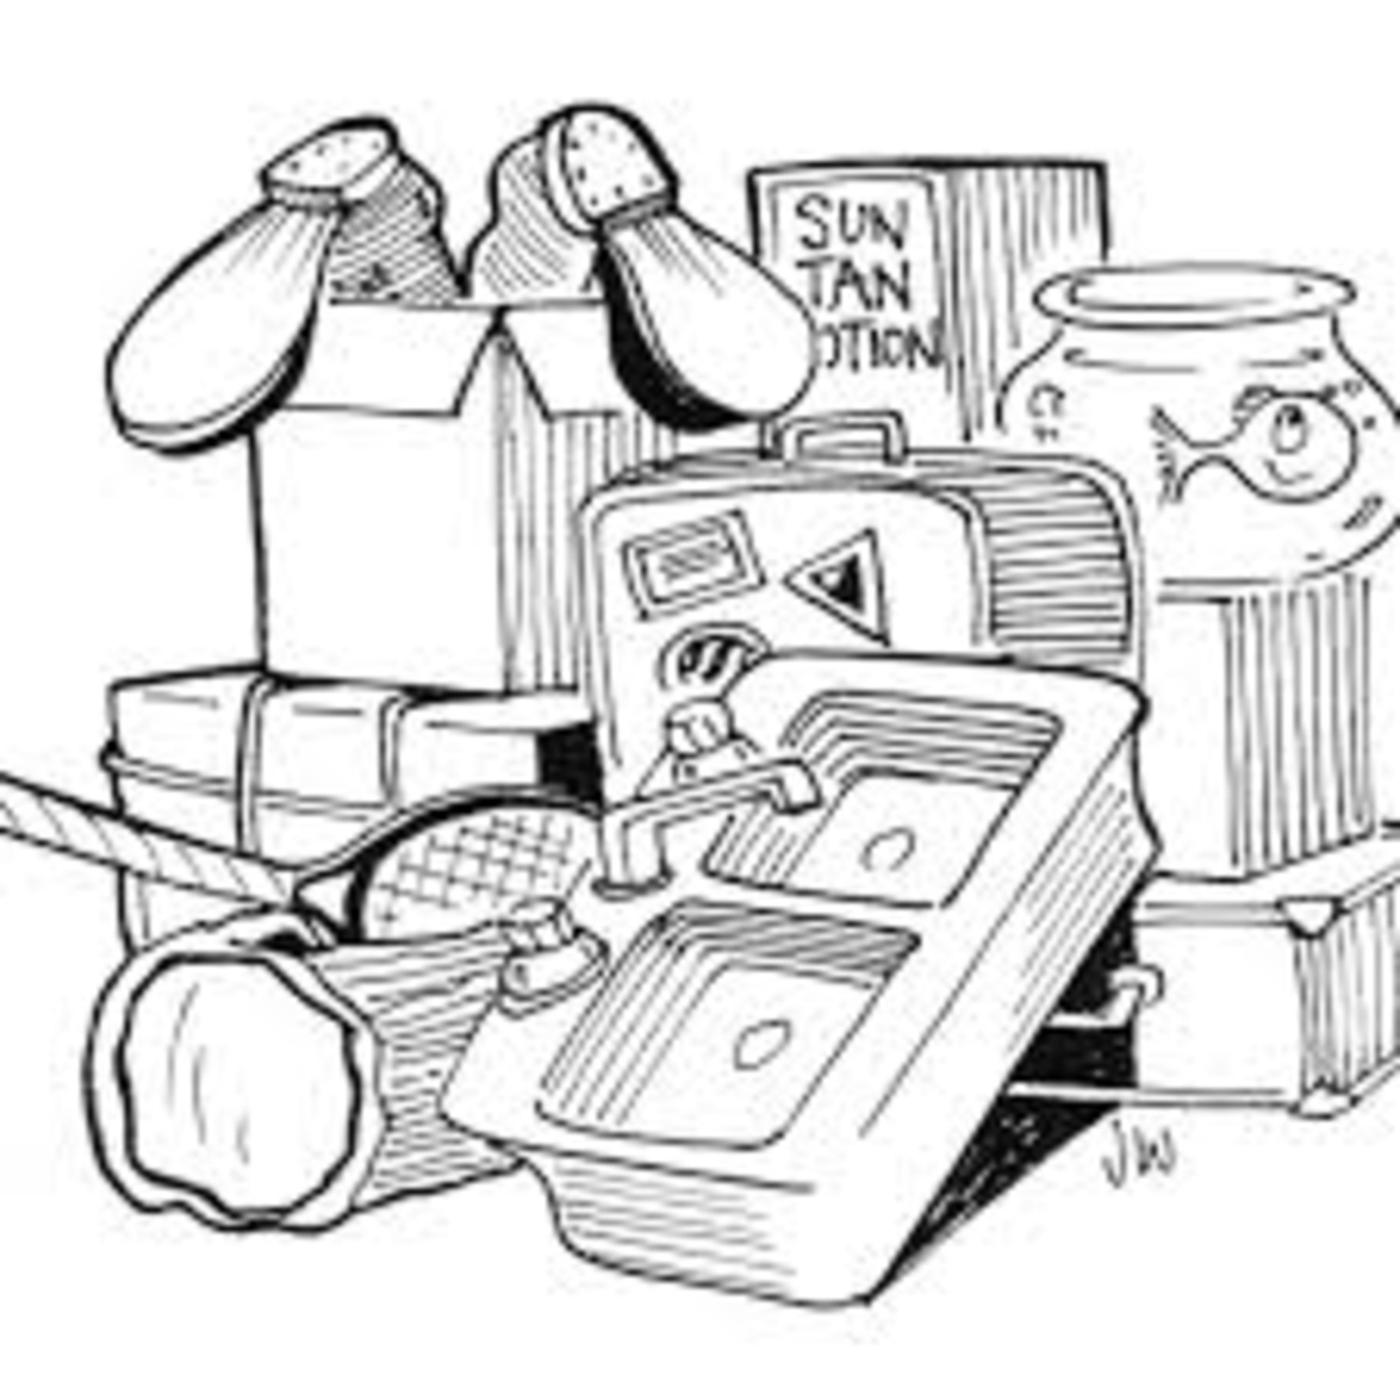 And, the Kitchen Sink (podcast).